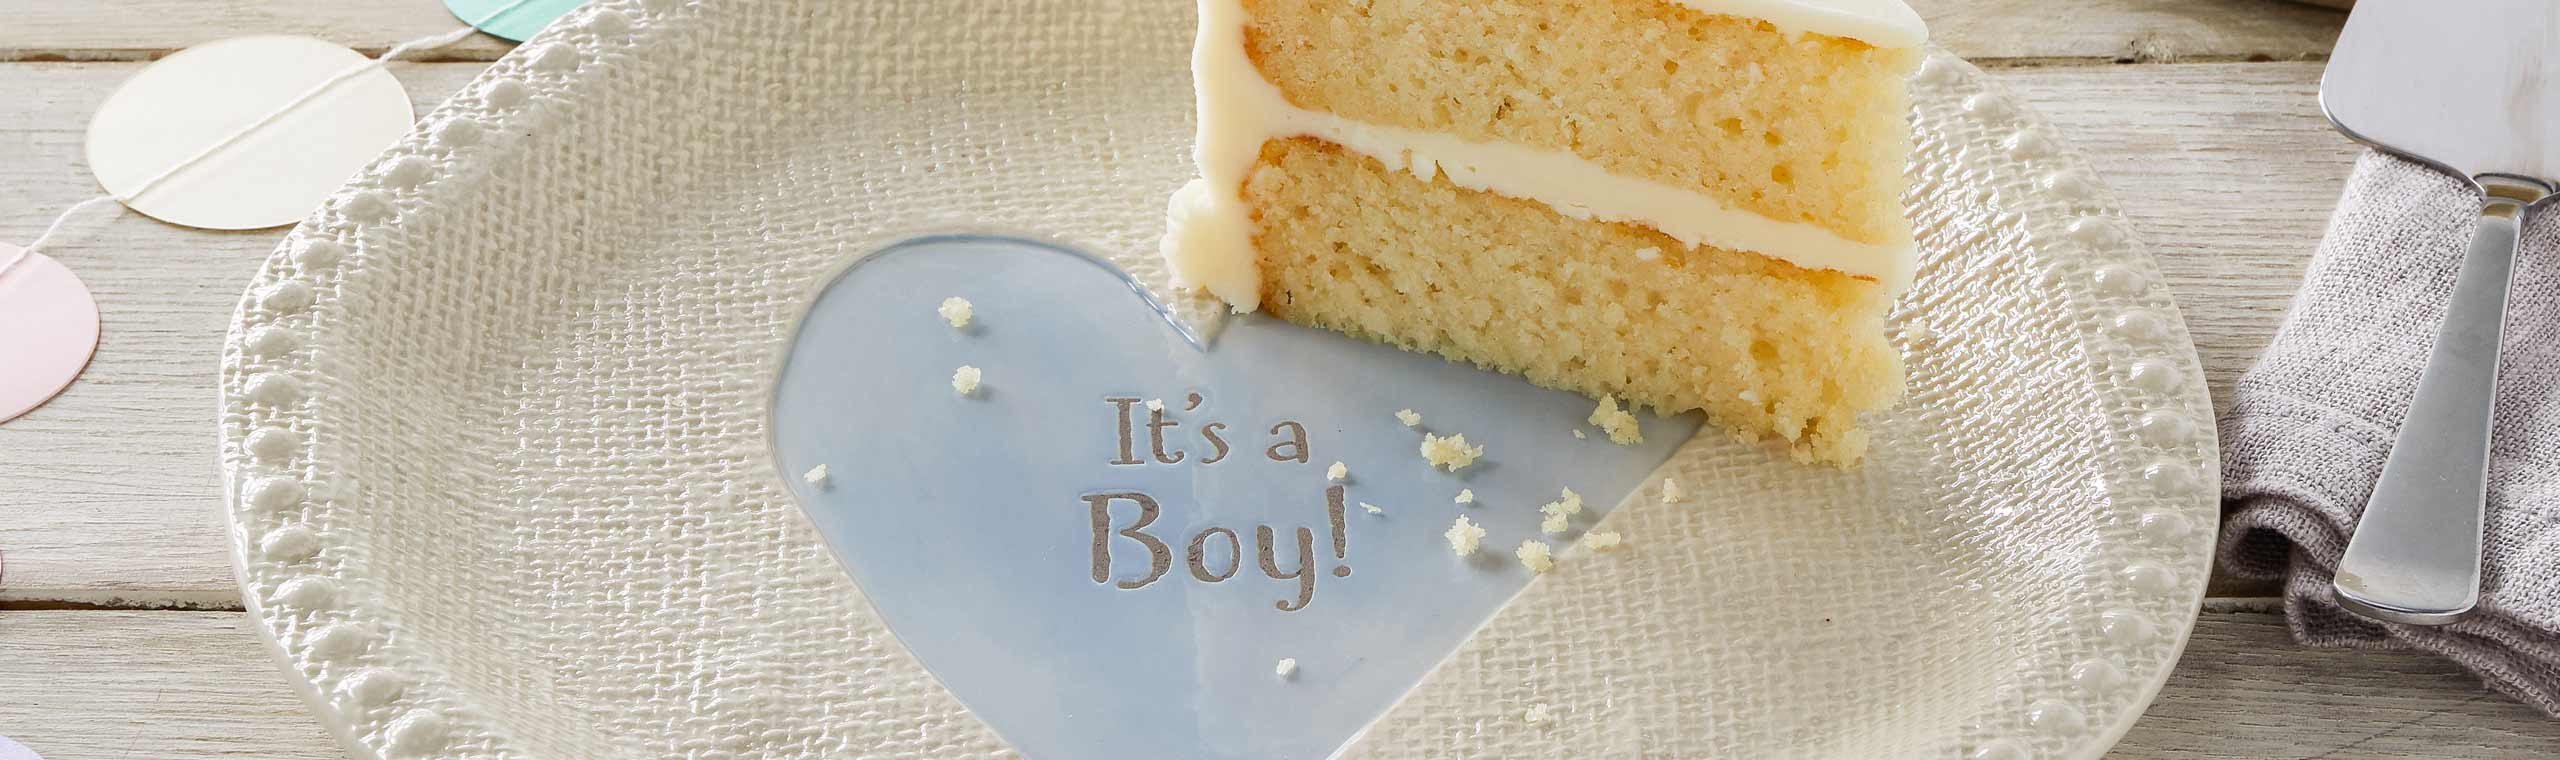 a plate with a cake and the text its a boy! in a heart